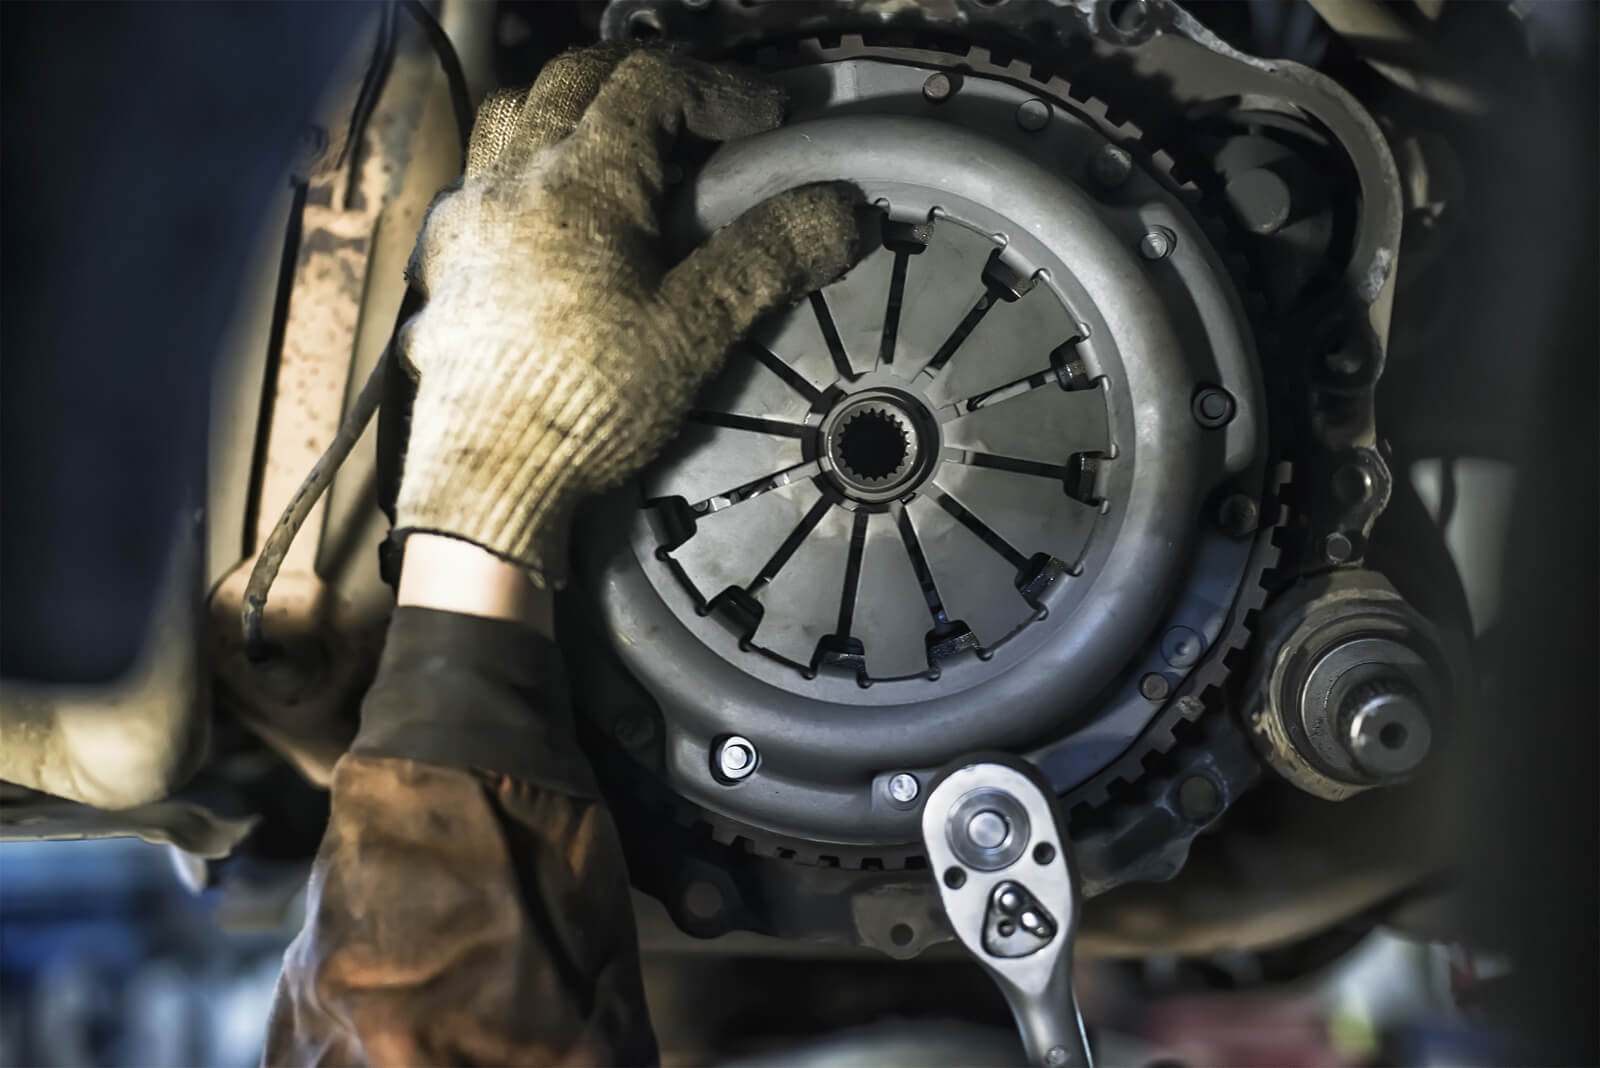 a clutch replacement in progress as a mechanic removes the assembly from the car's underside